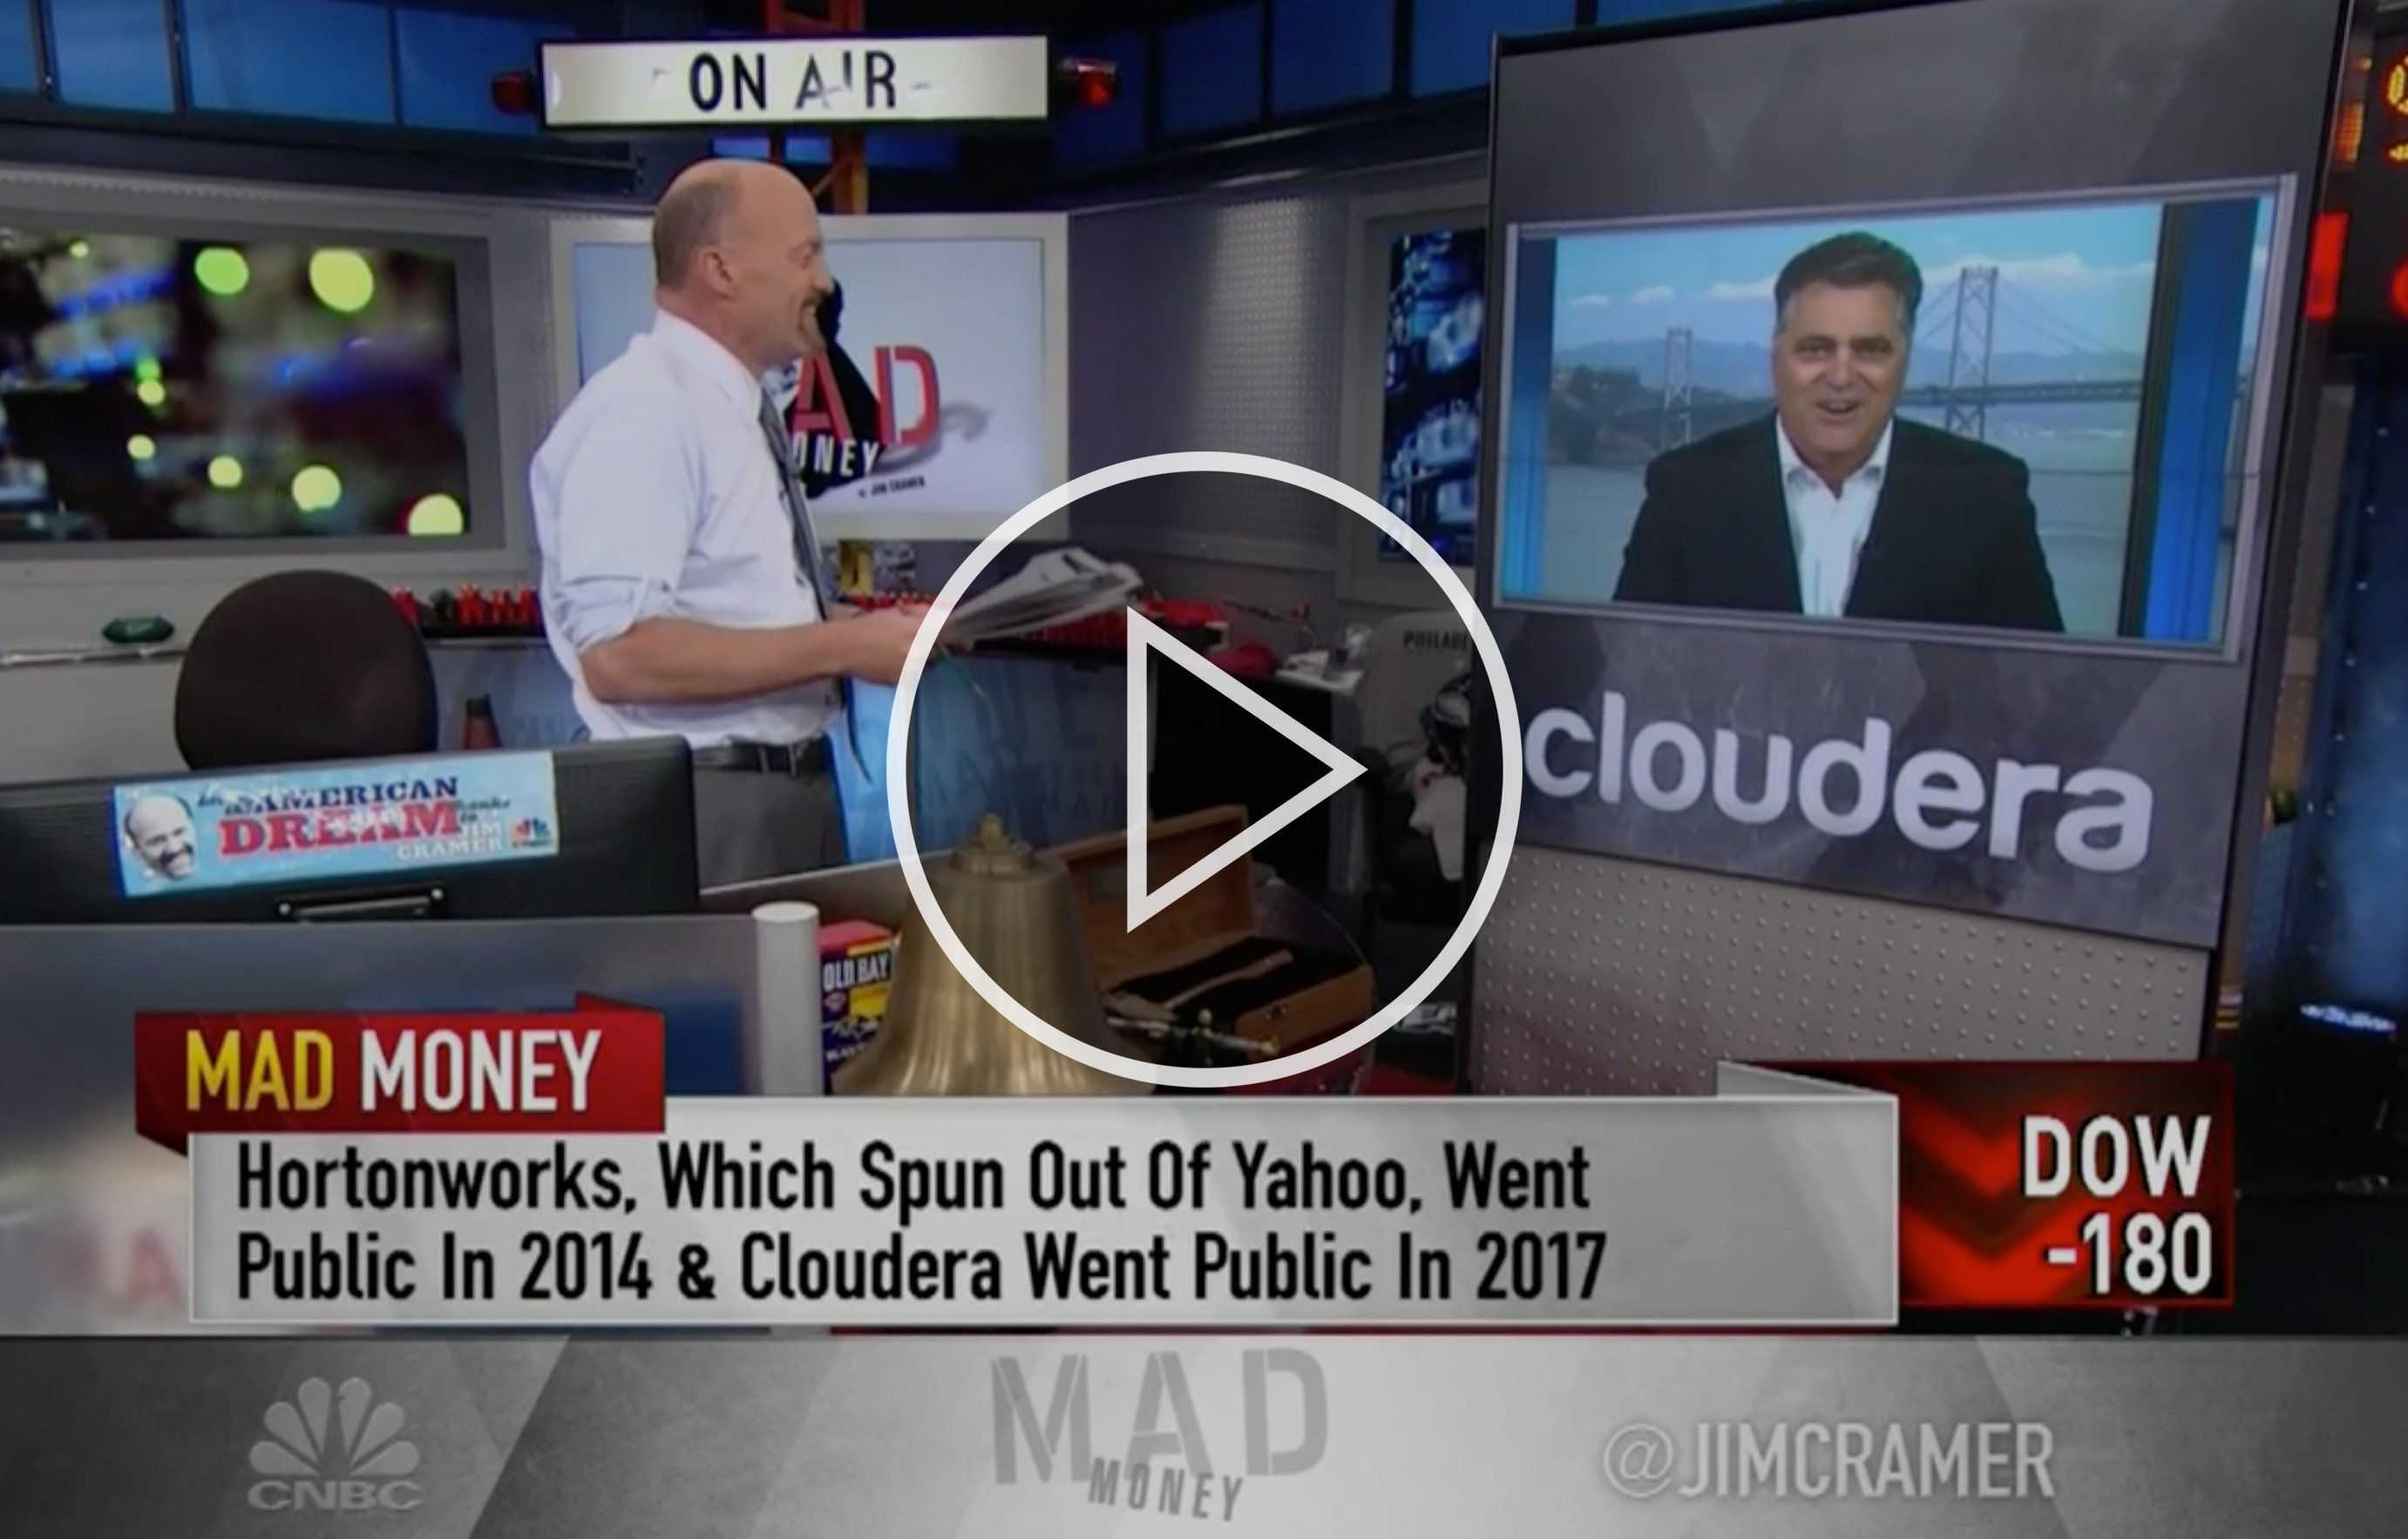 Jim Cramer interview with Cloudera CEO Tom Reilly